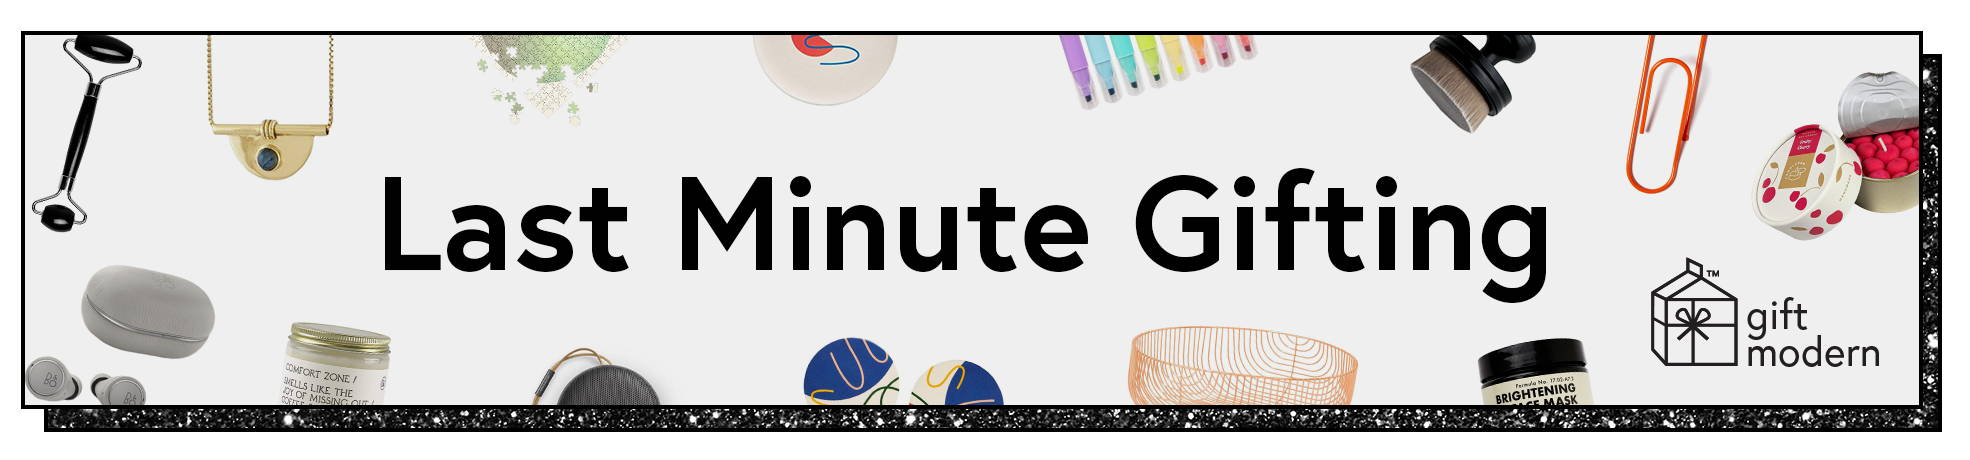 modern last minute holiday gifts for last minute shoppers with a black glitter border